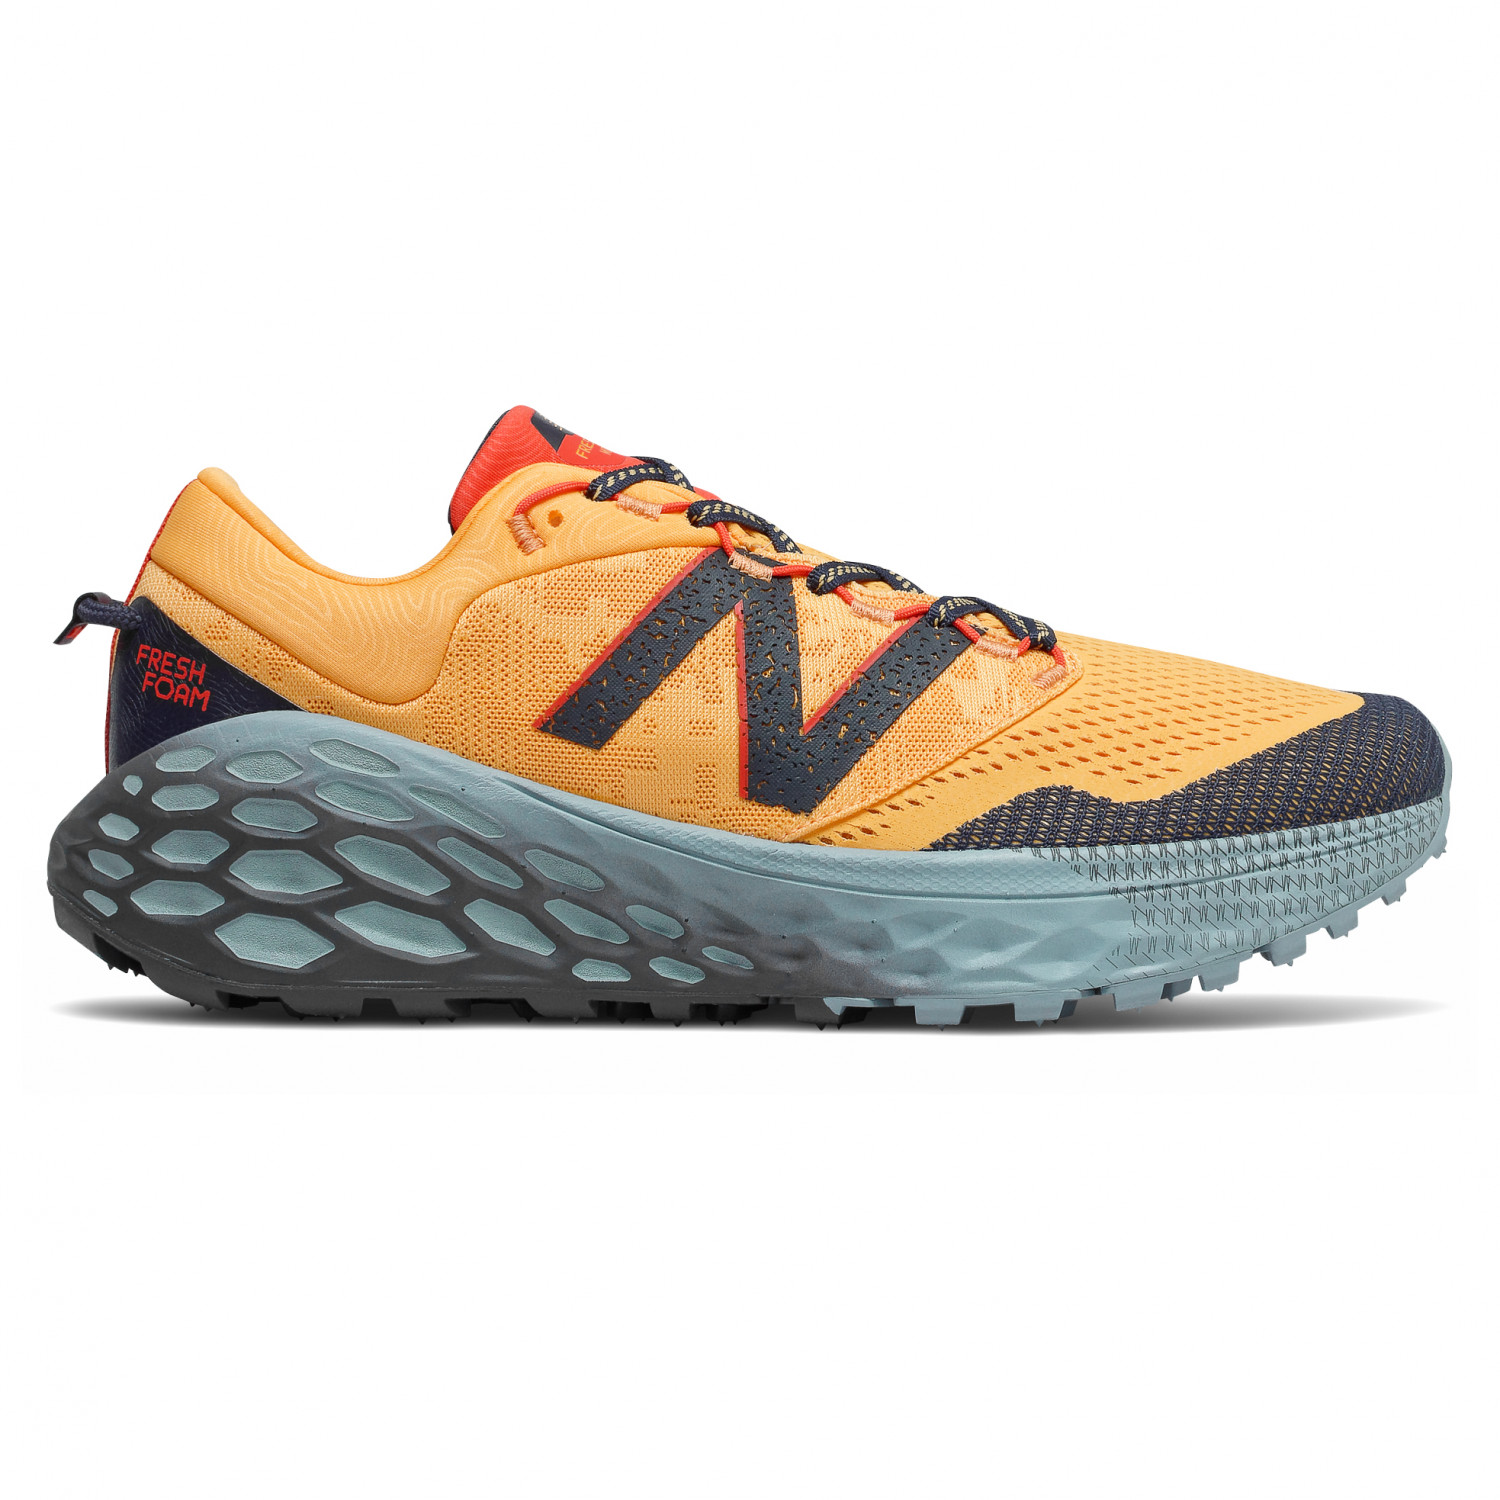 New Balance - Trail More - Trail running shoes - Habanero | 8 (US)